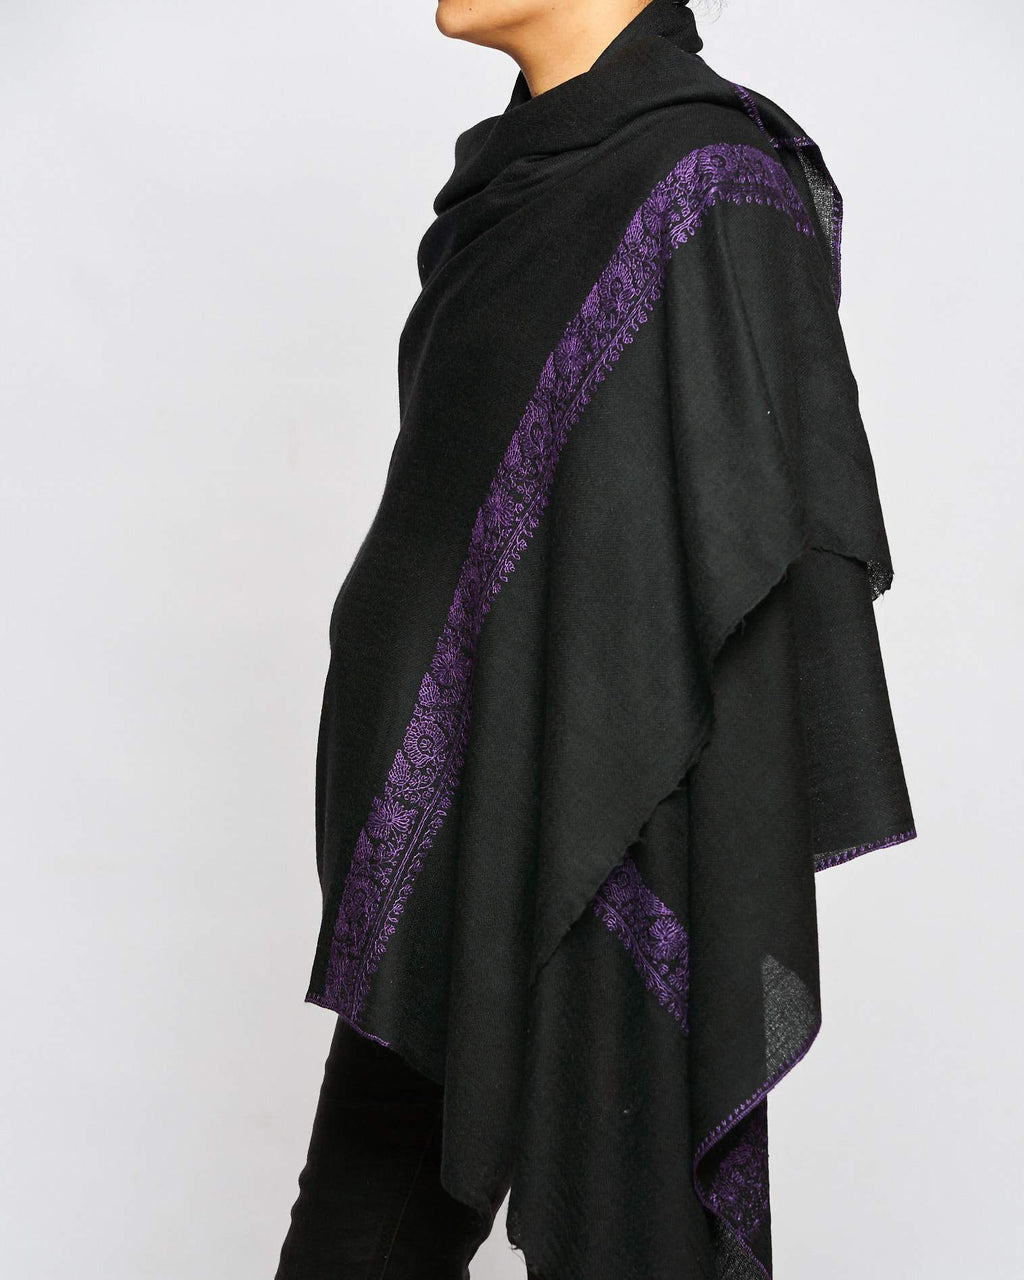 Fine Cashmere Scarf - Black/Purple Border